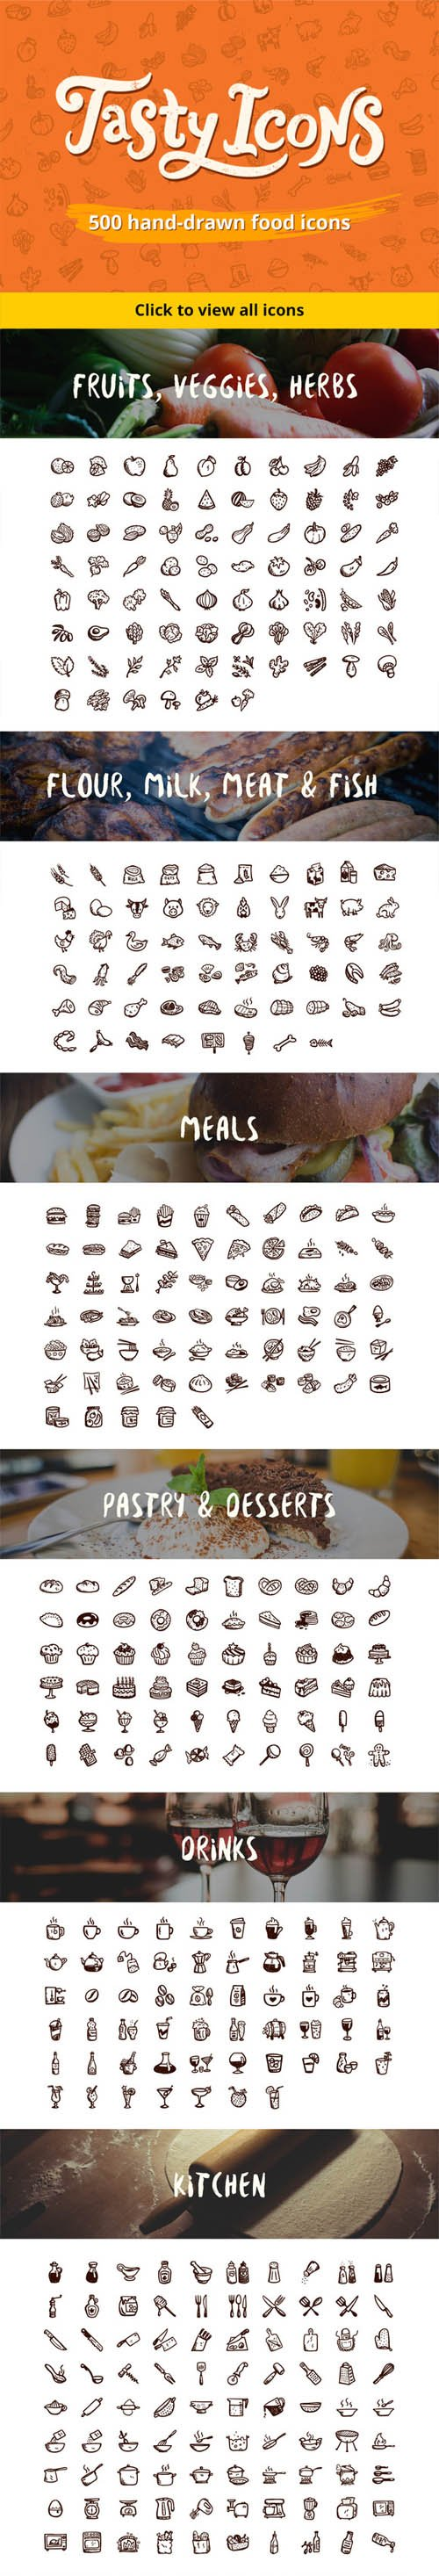 500 hand-drawn food icons - Creativemarket 170392